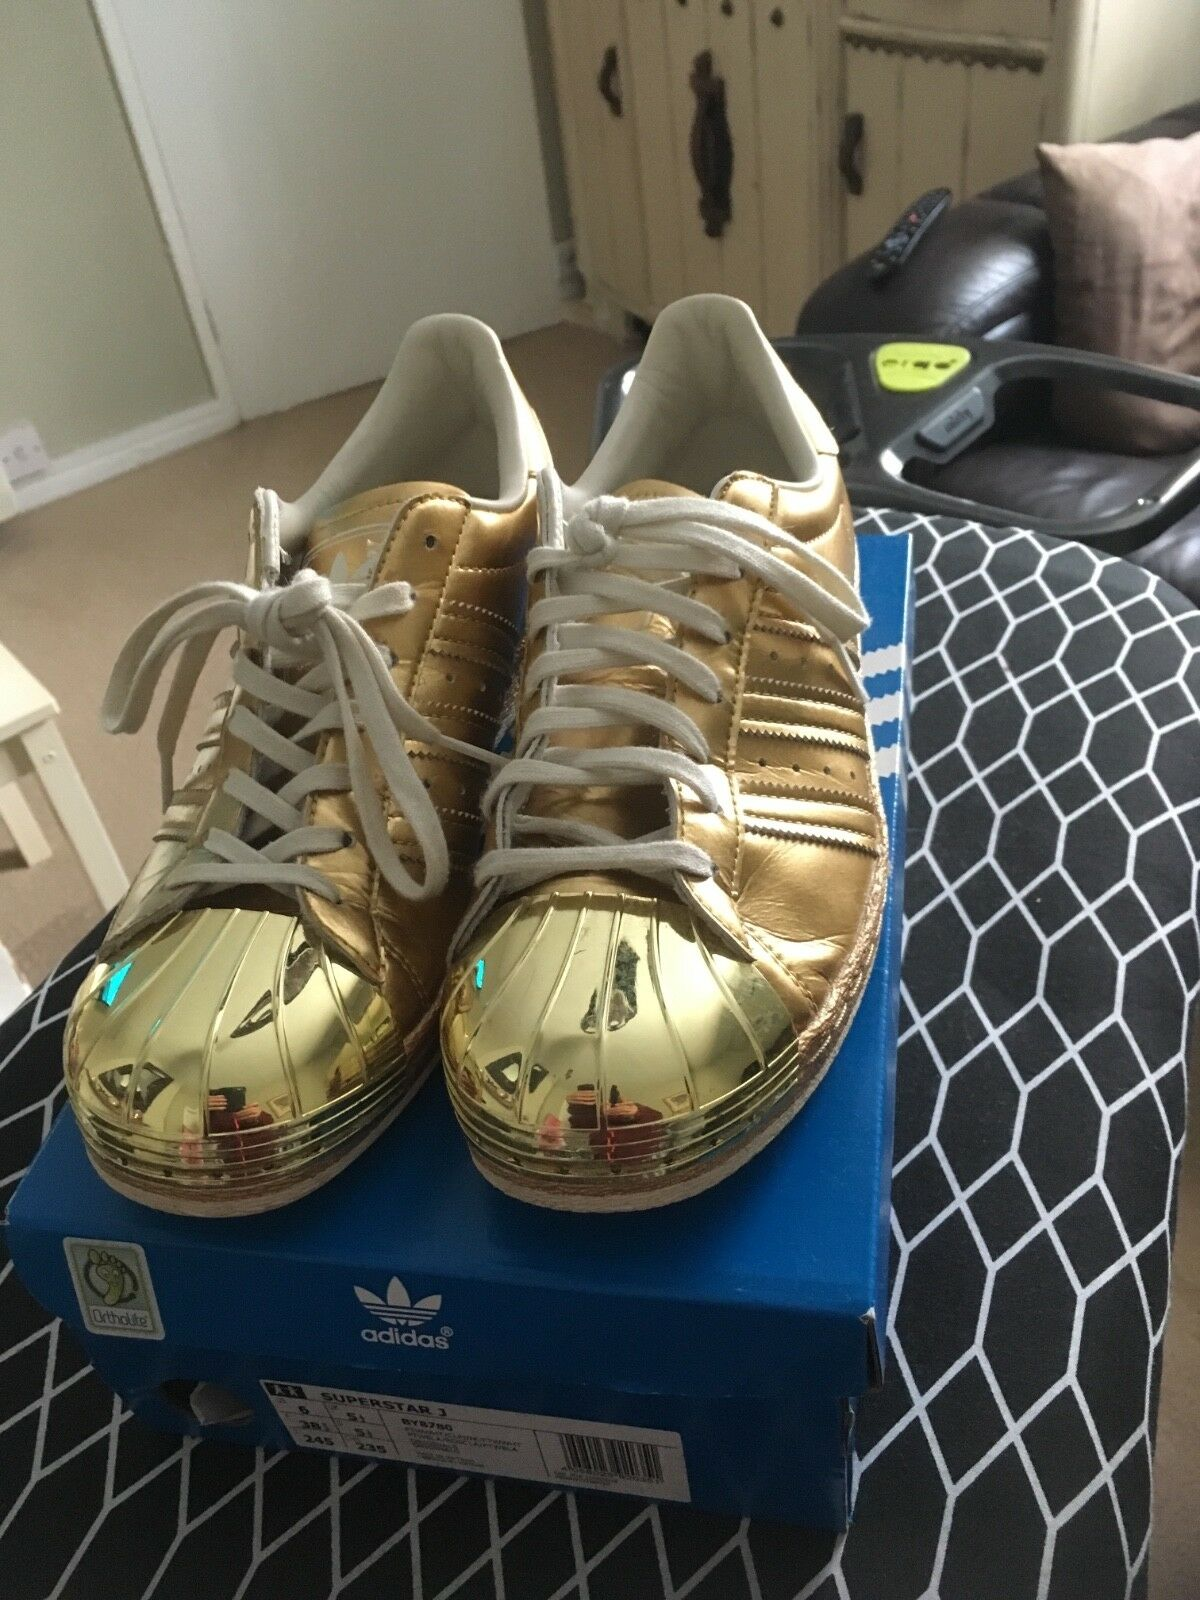 ADIDAS SUPERSTAR GOLD 80'S METALLIC UNISEX TRAINERS LIMITED EDITION SIZE UK 6